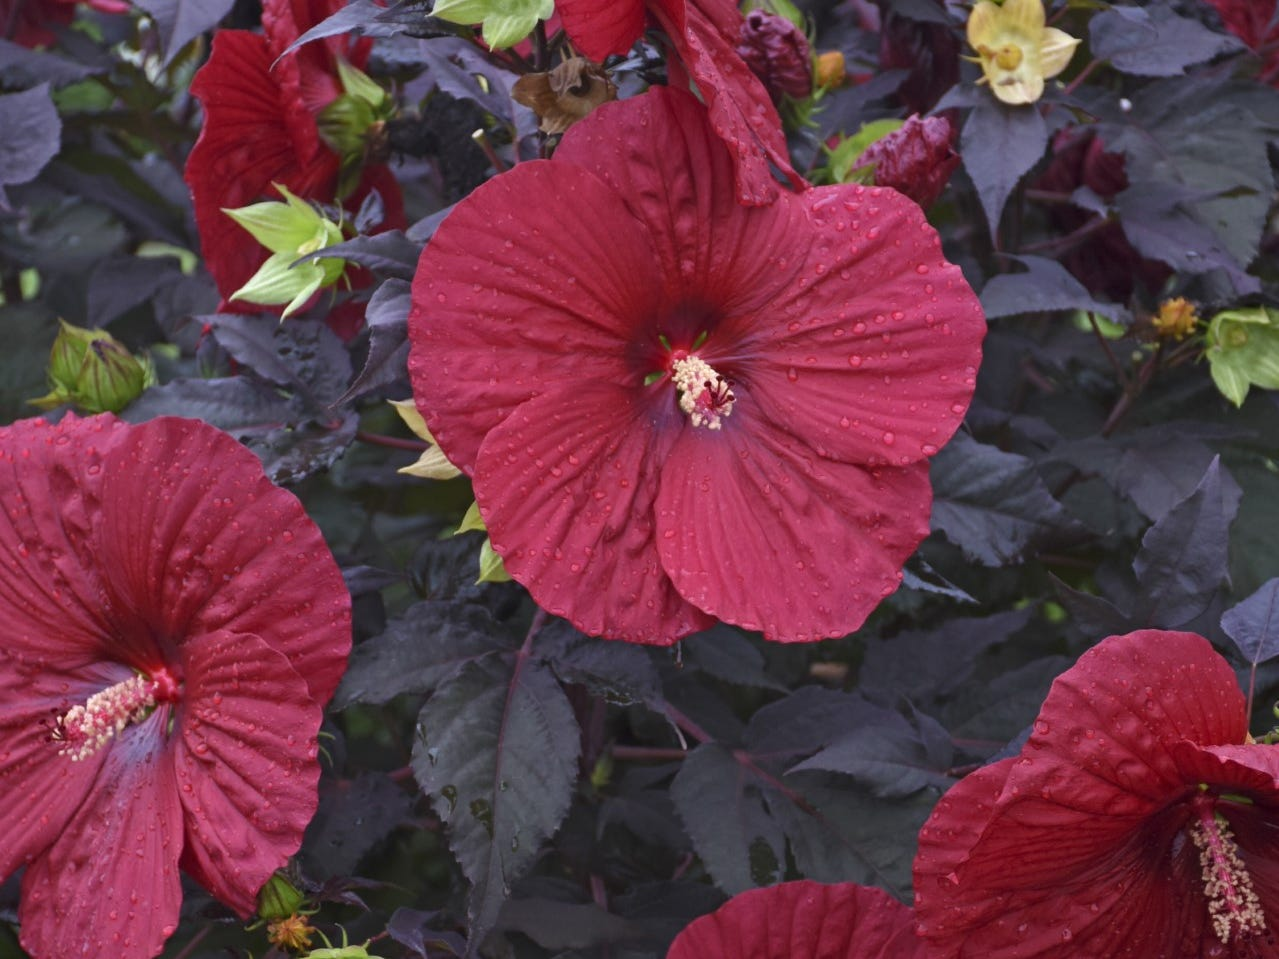 Summerific Holy Grail Hibiscus has flowers that are enormous at 8 to 9 inches across.